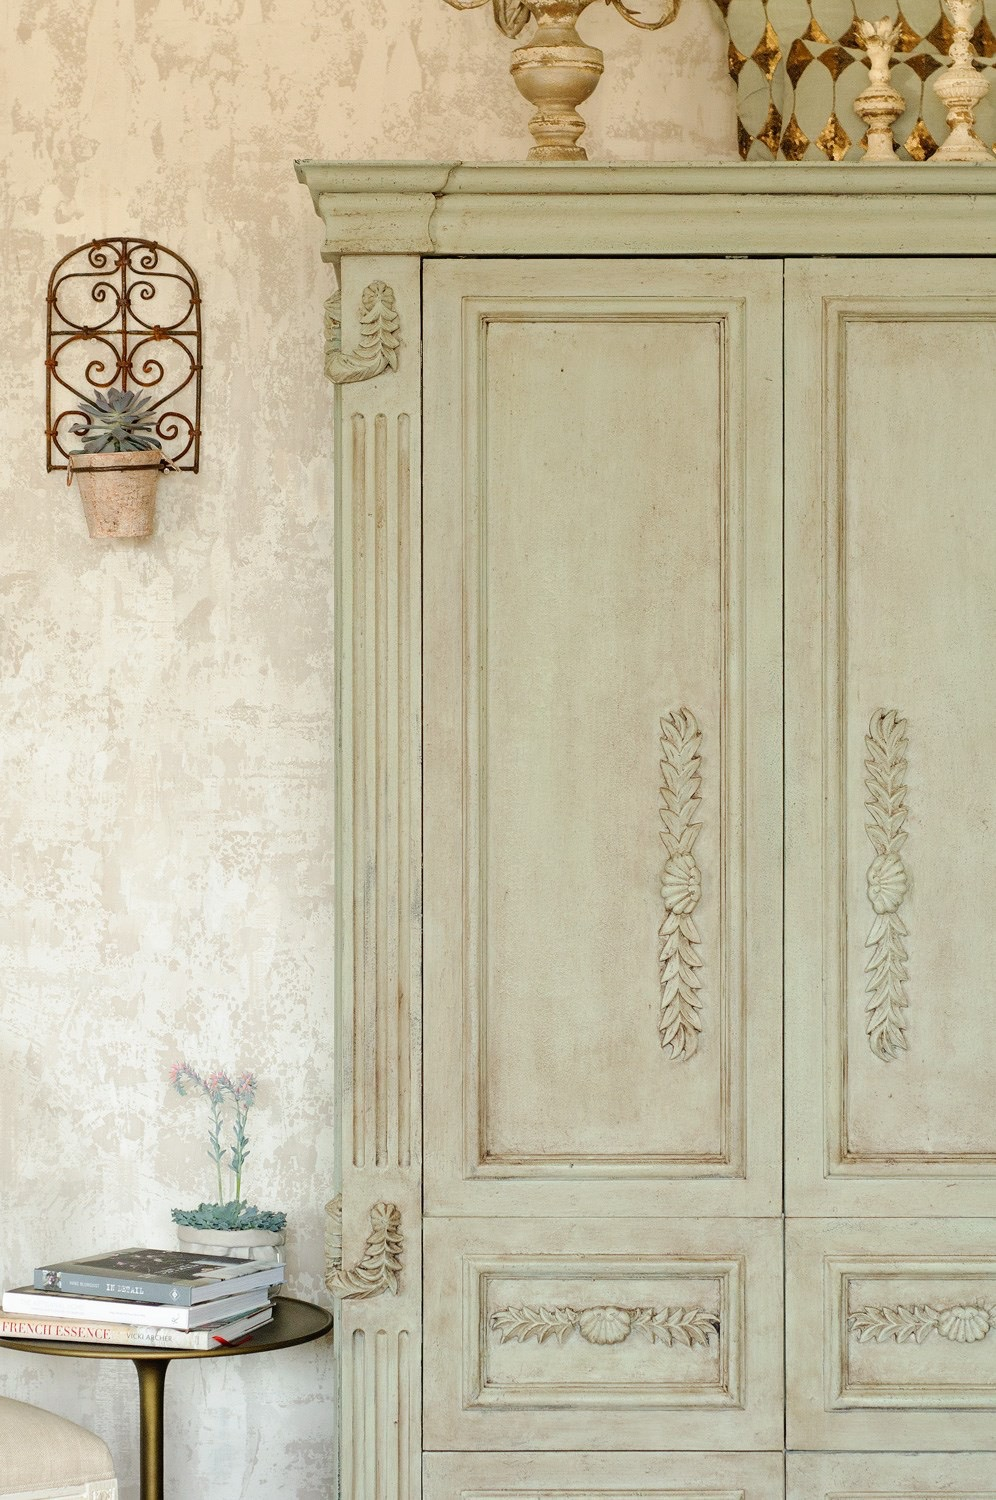 Want to learn how to create Fusion Fresco Walls and Furniture for a European Rustic Painted Textured Effect